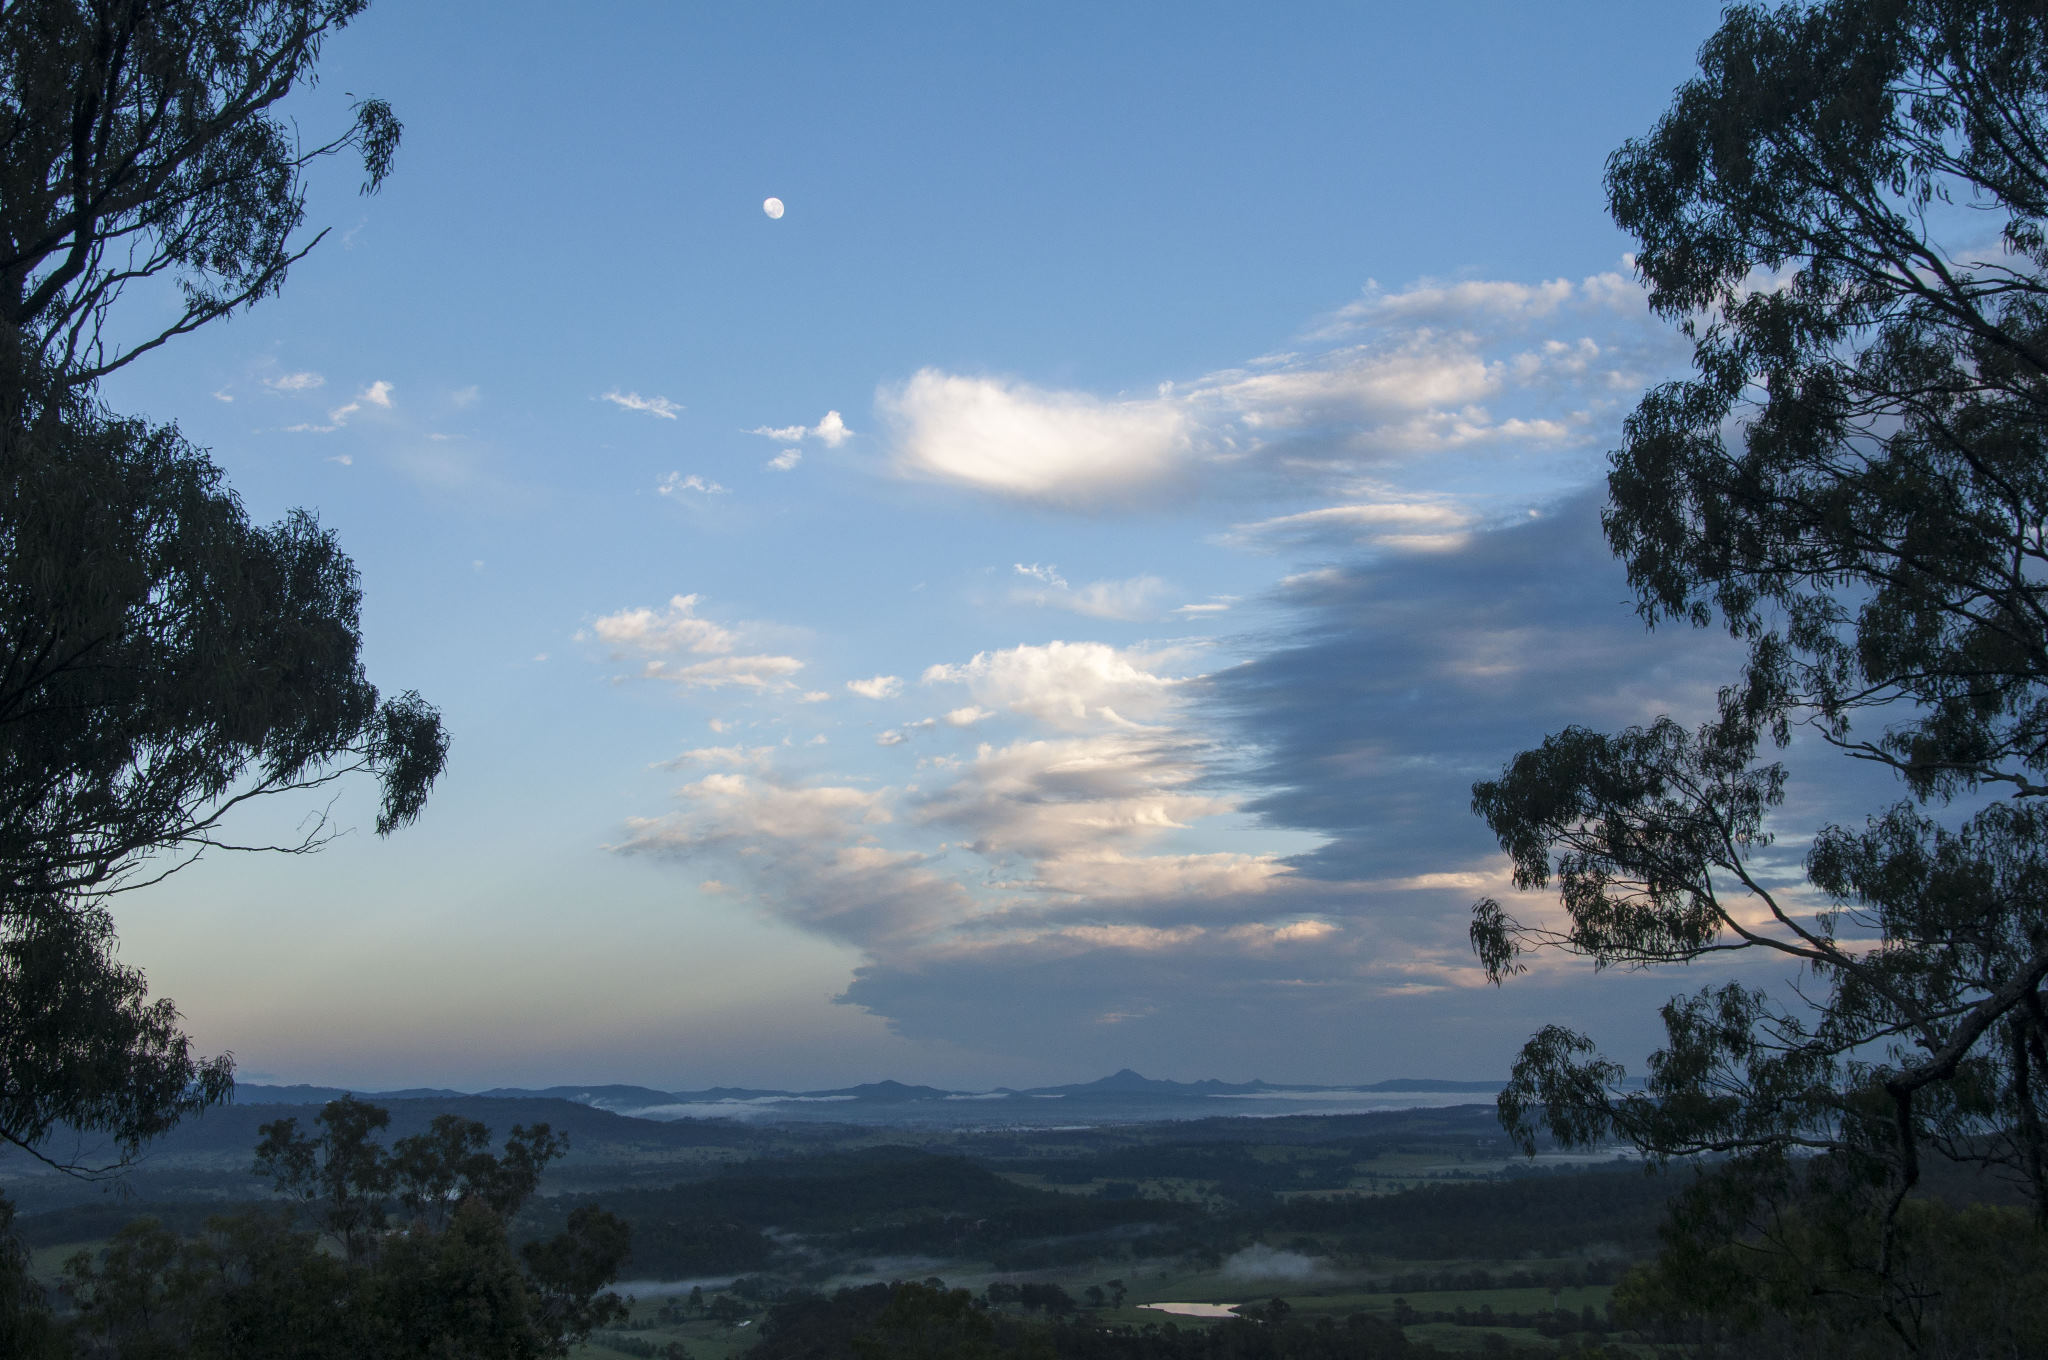 Daylight Moon and Storm passing